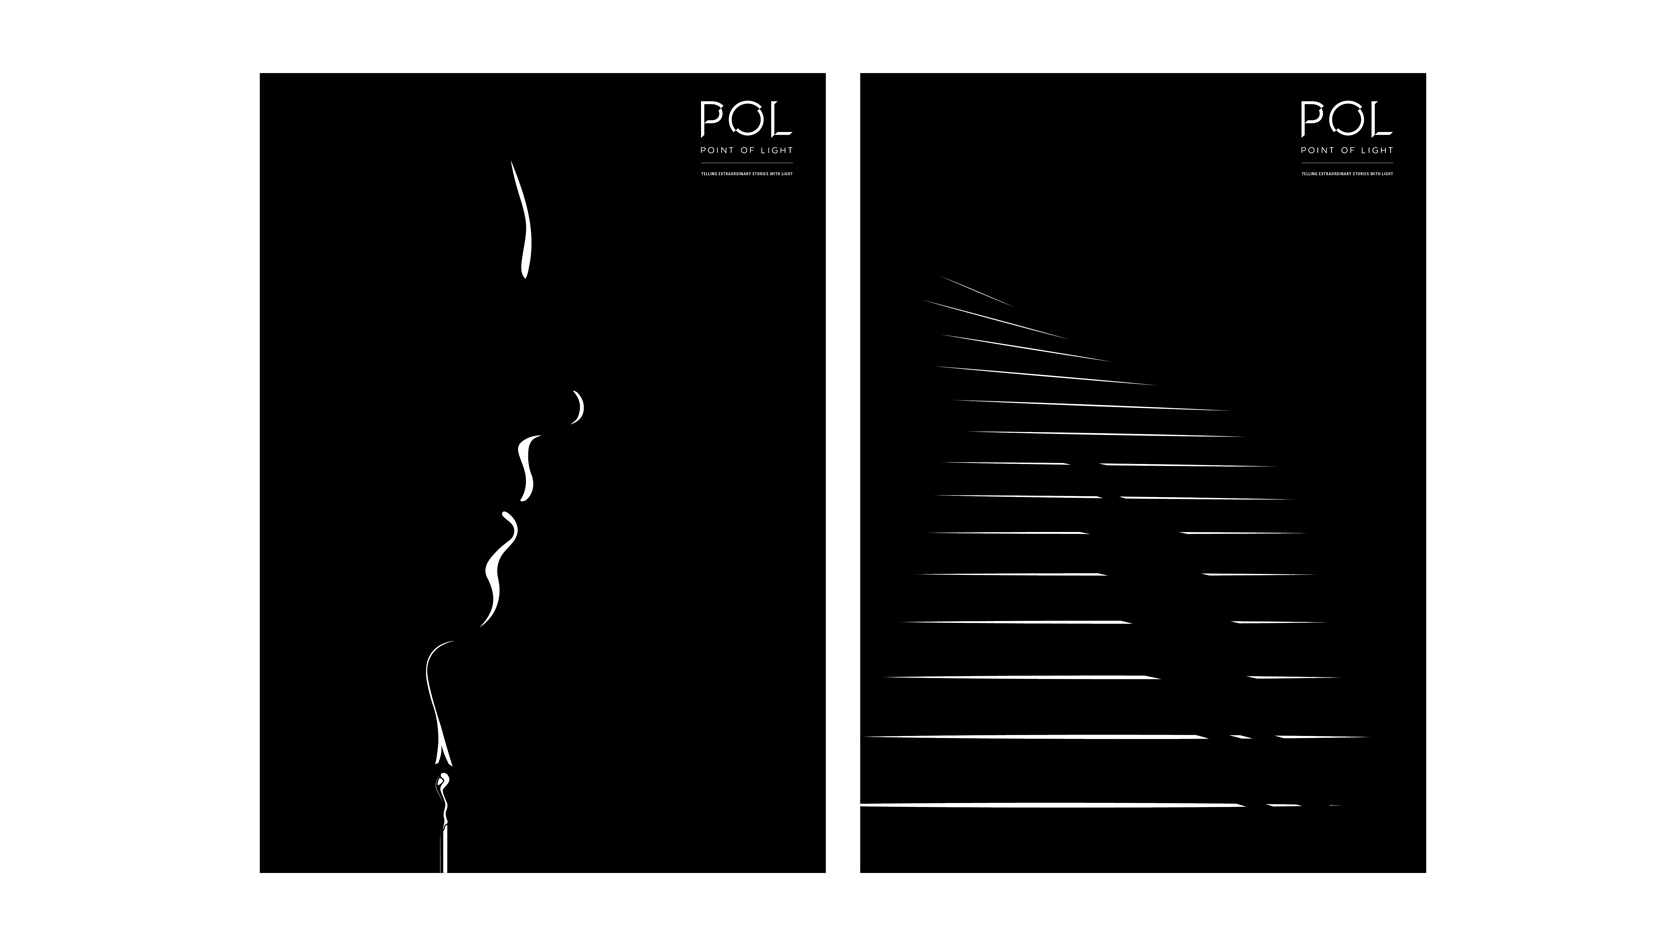 02_point_of_light_posters image